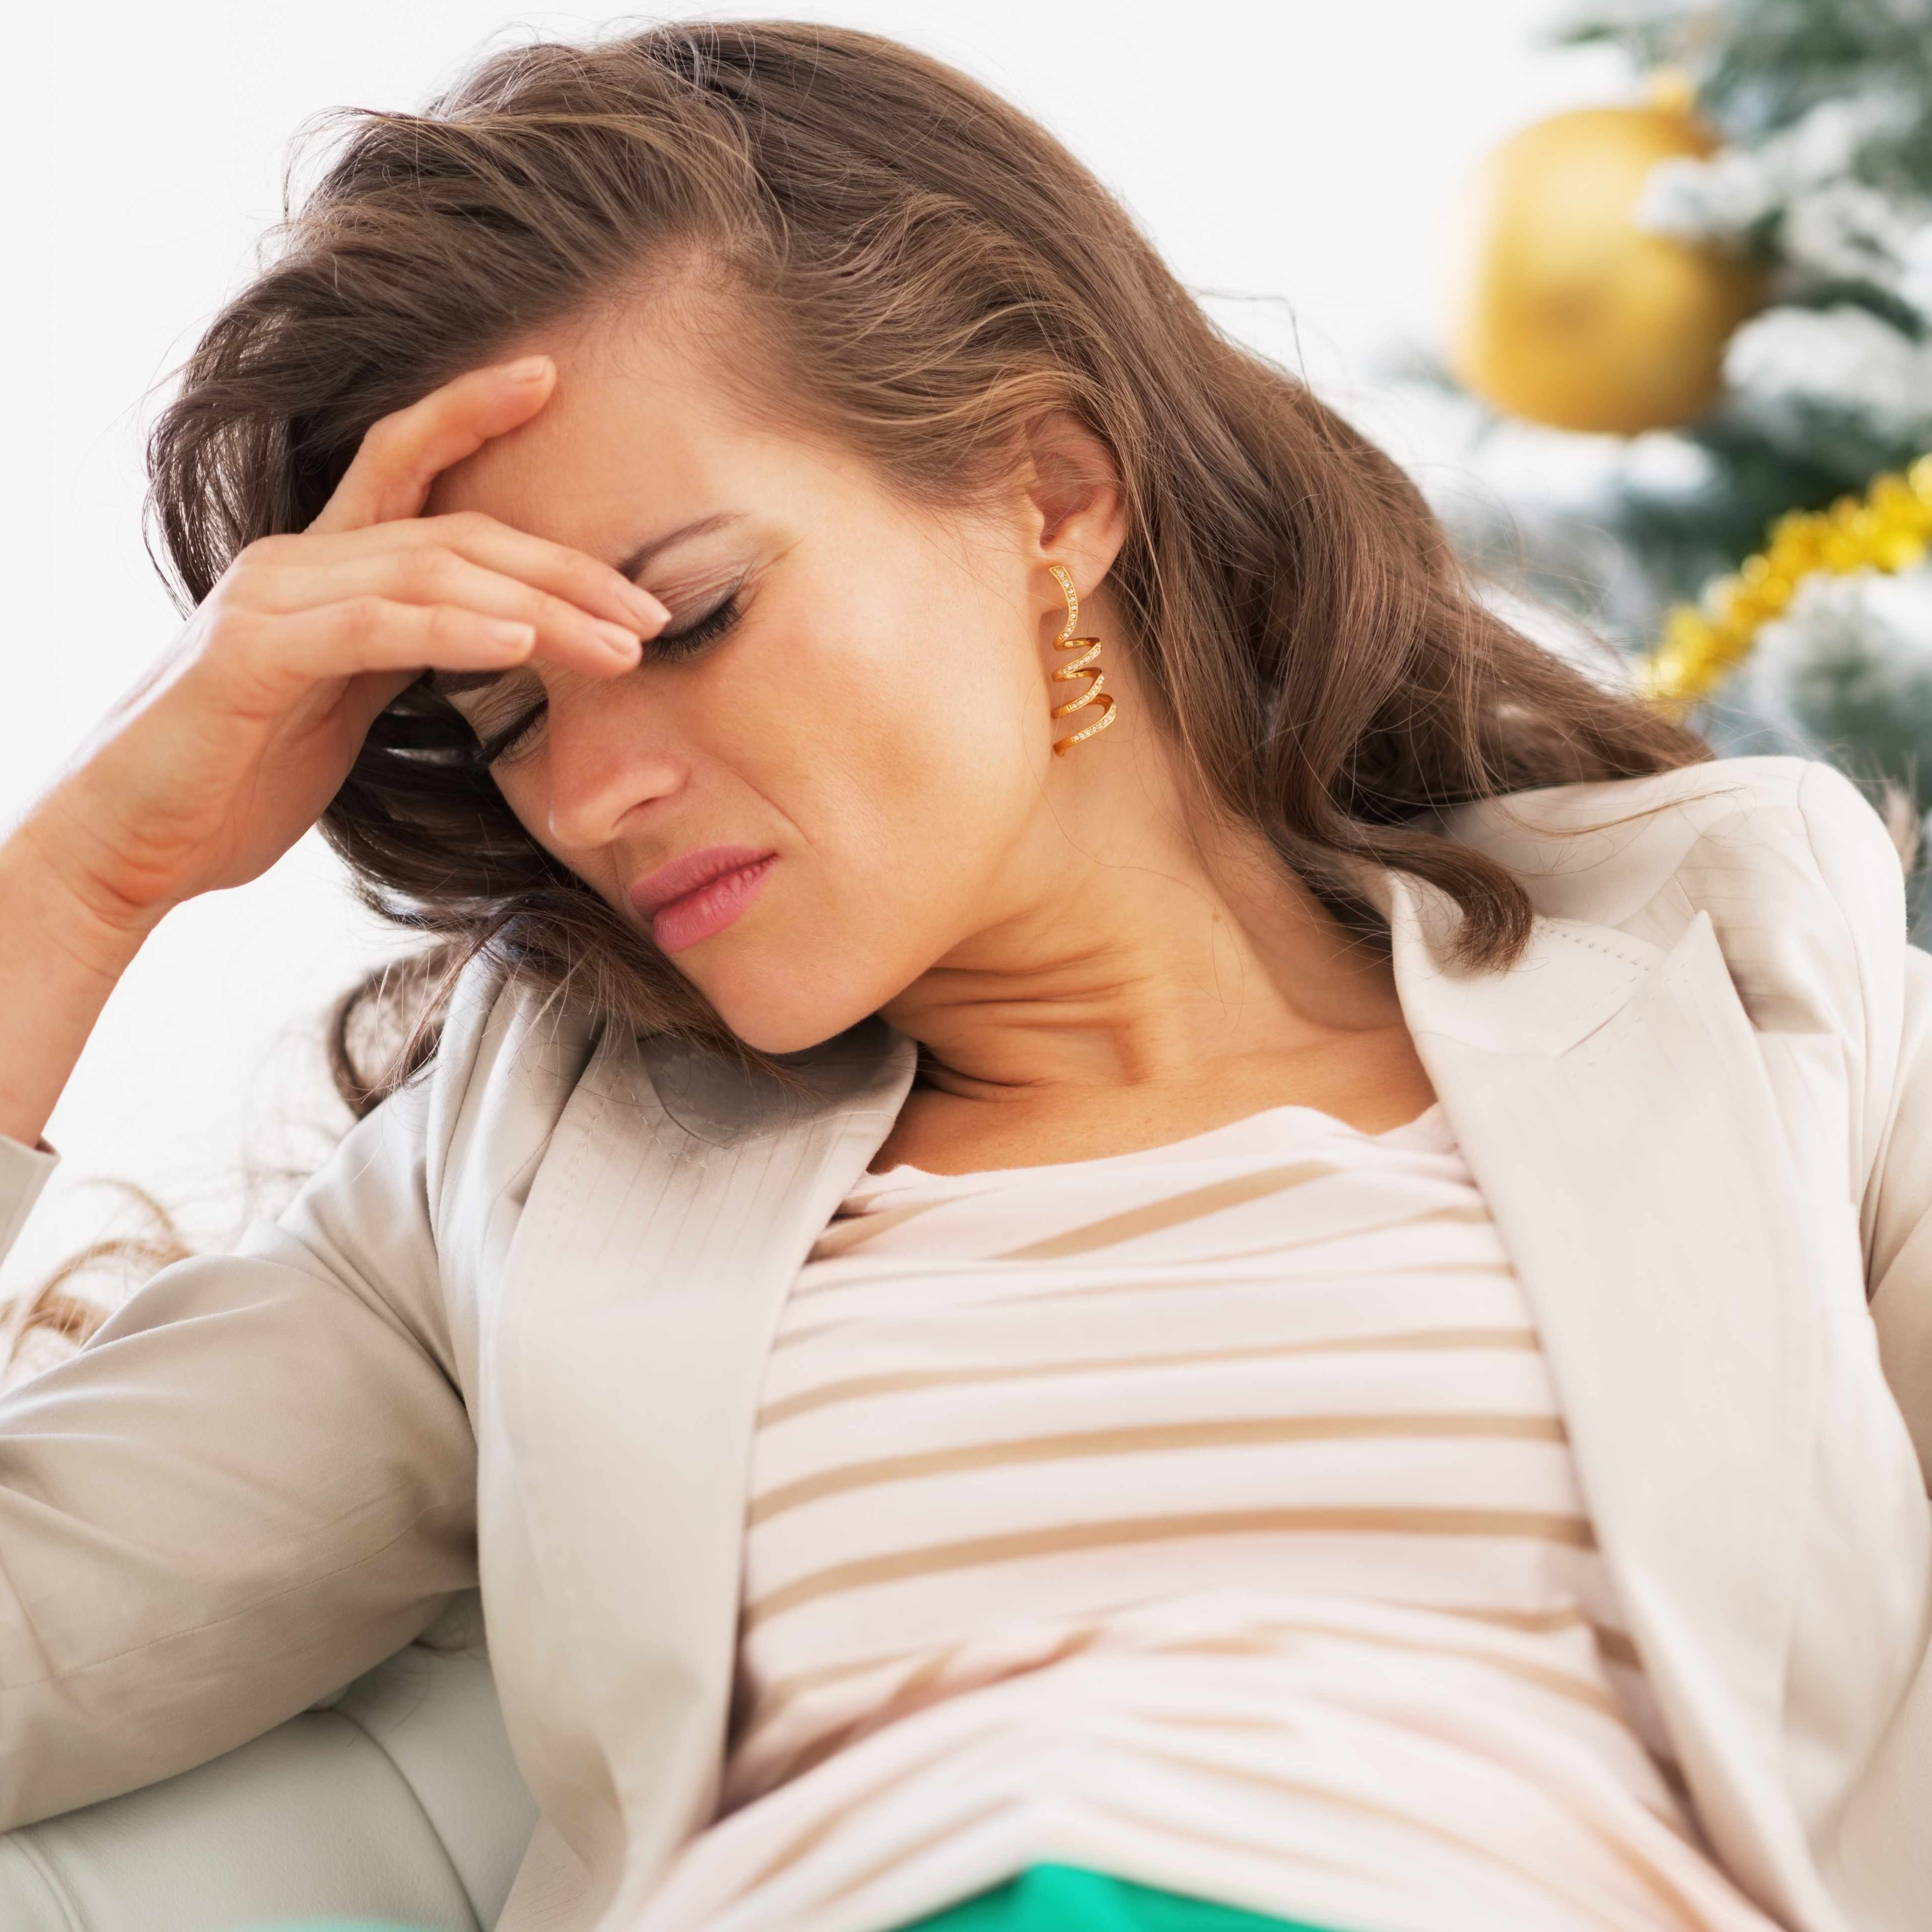 A woman stressed out in front of a holiday Christmas tree.